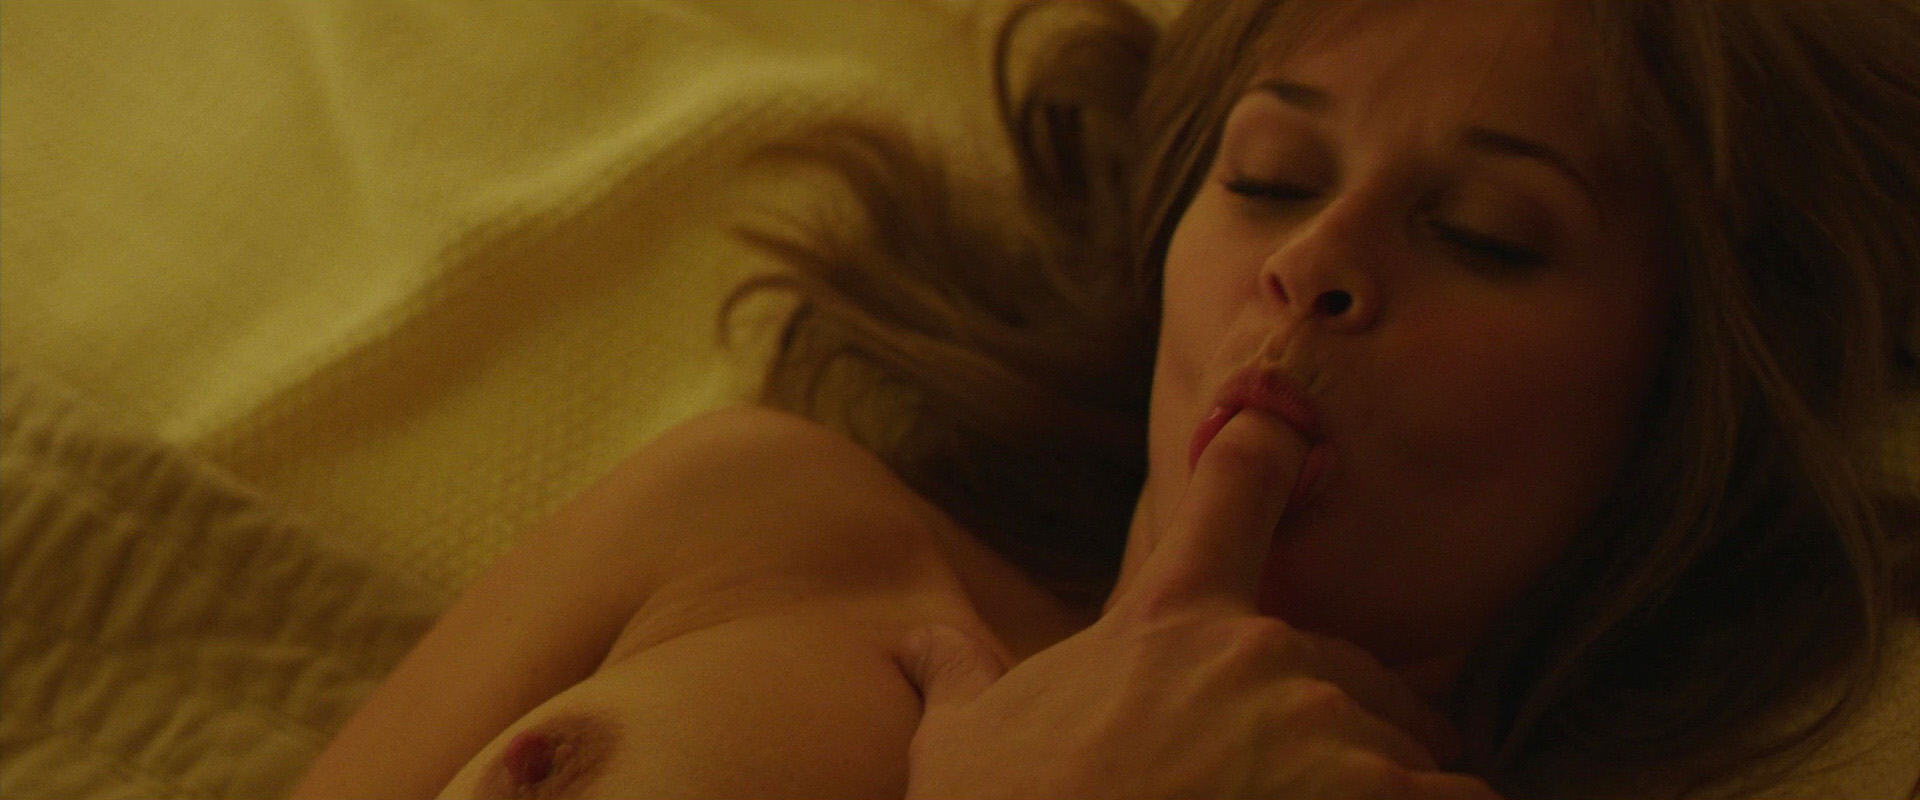 reese witherspoon fucking scene